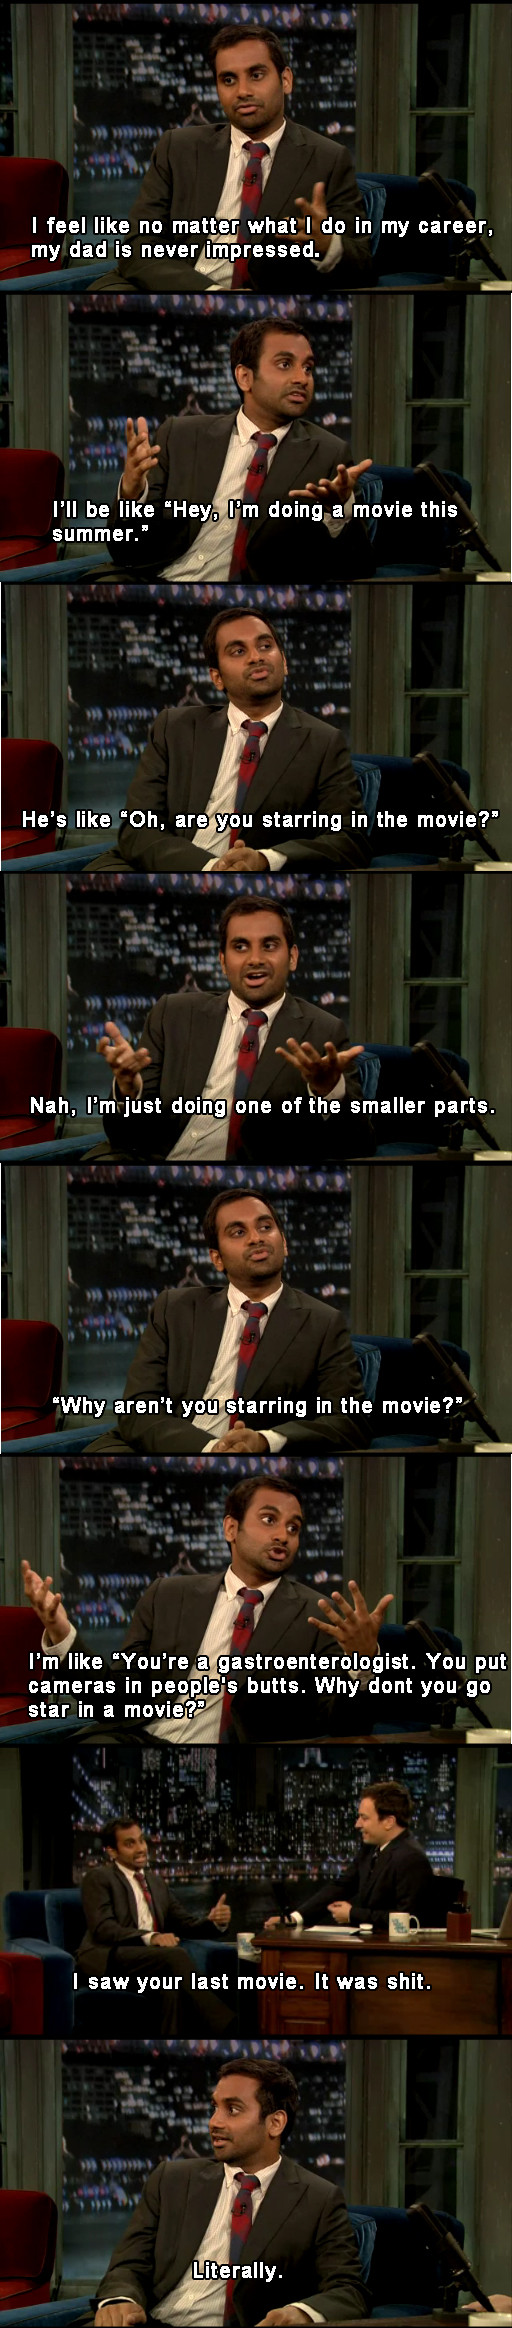 aziz-ansari-father-actor-job